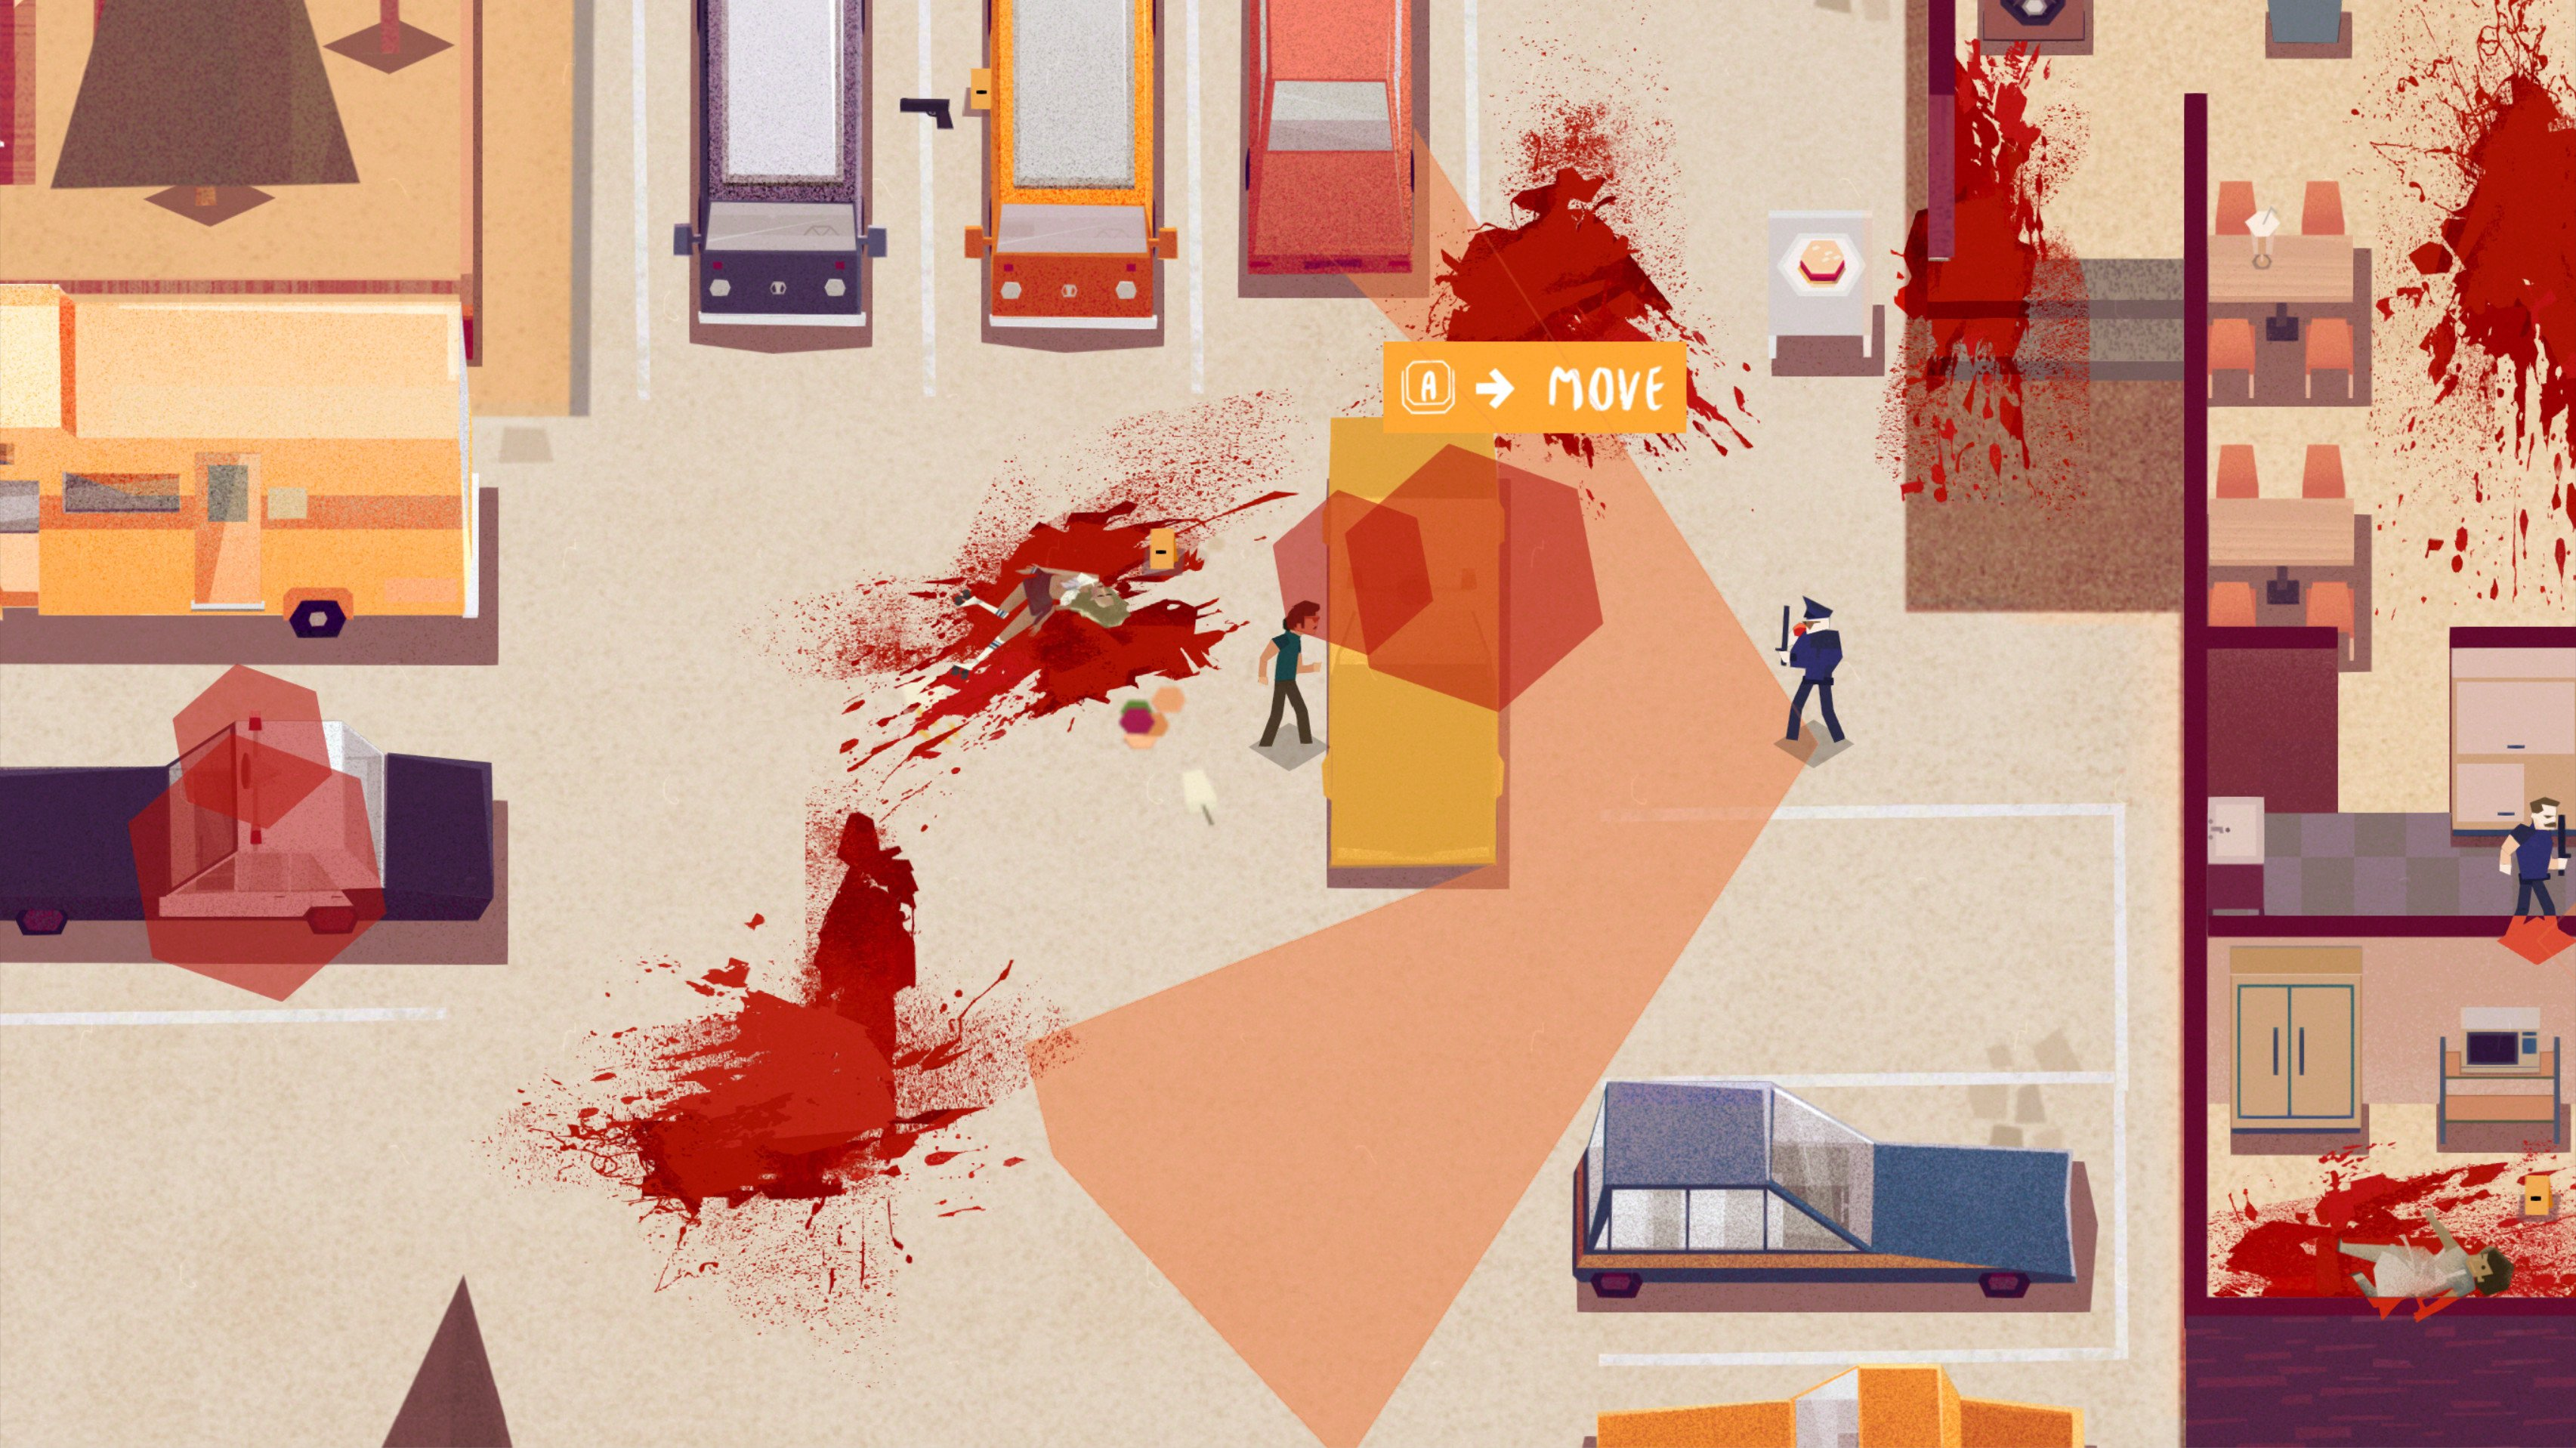 Serial Cleaner game image